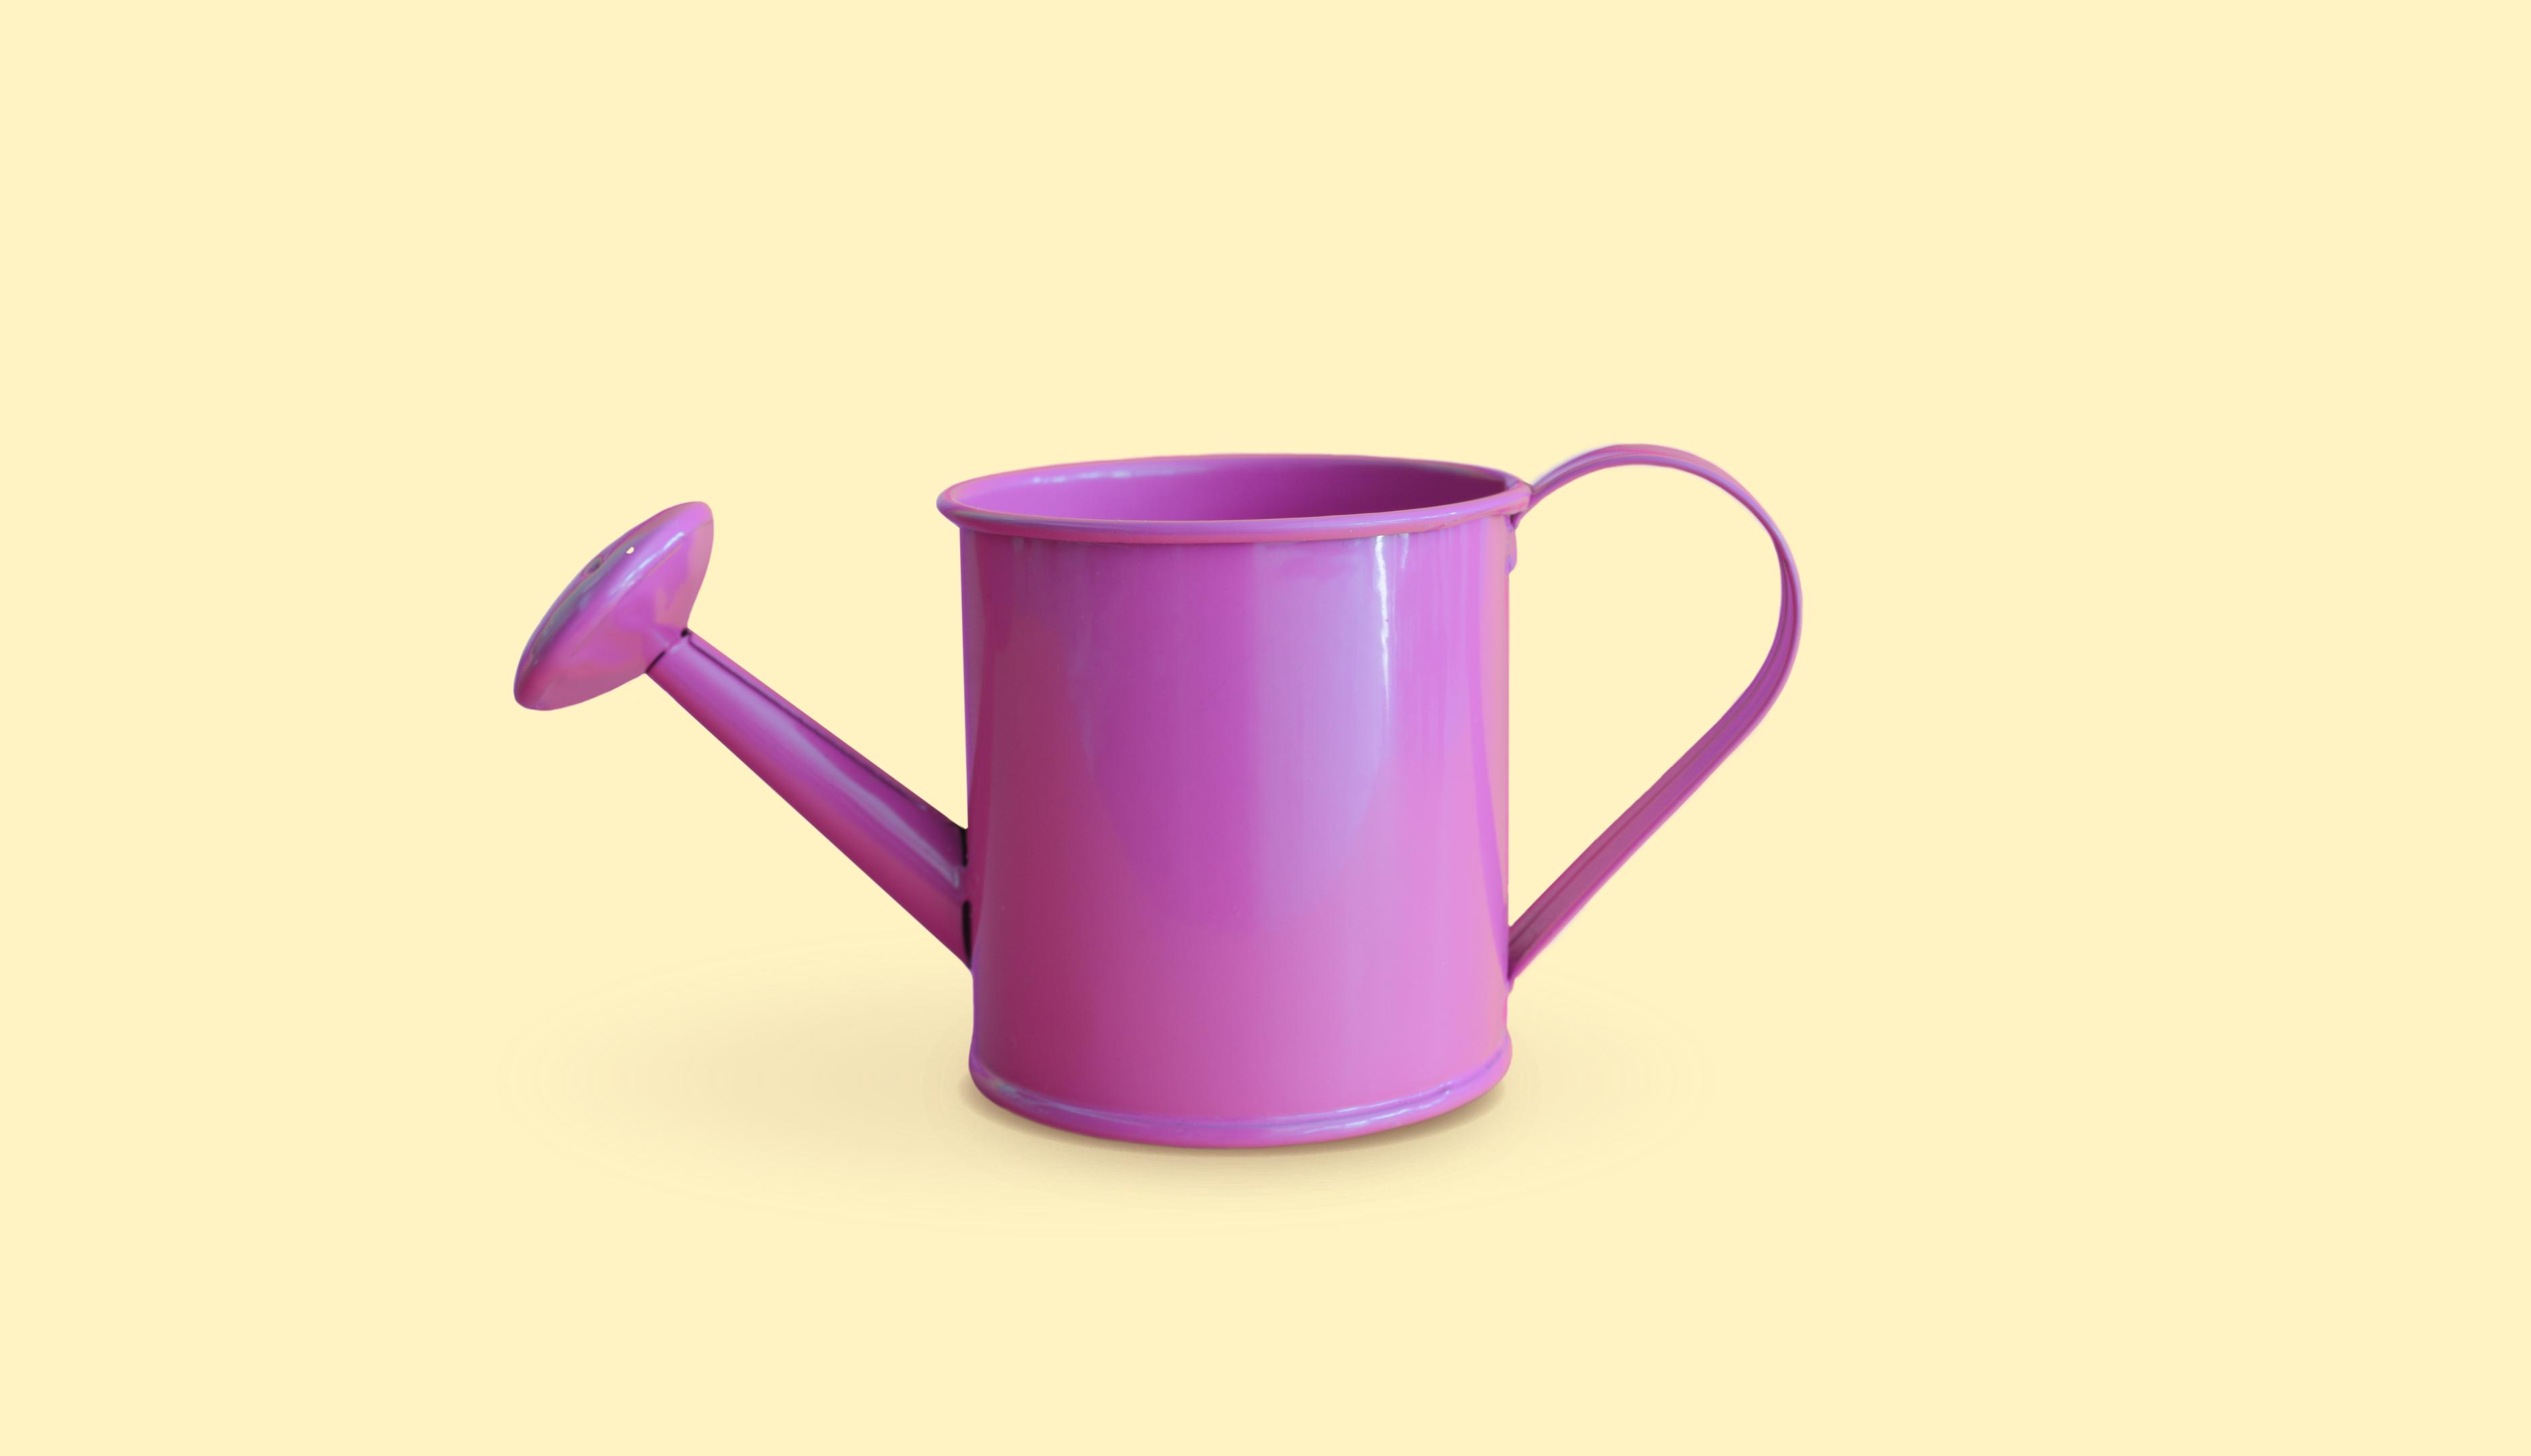 Title: Here's How an HSA Can Extend the Quality of Your Life Graphic: yellow background with a watering can to depict growth